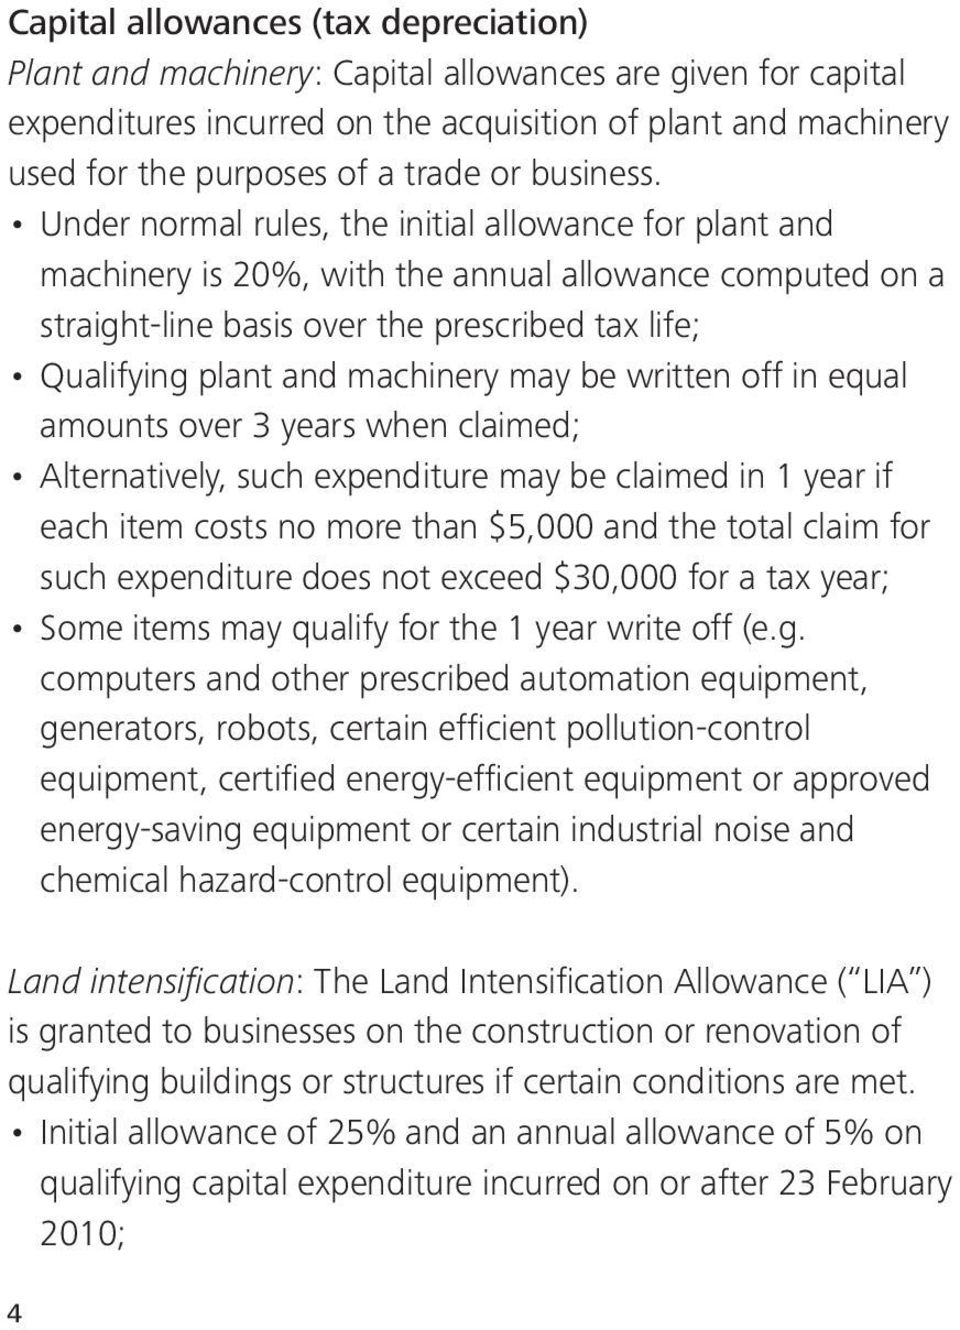 Under normal rules, the initial allowance for plant and machinery is 20%, with the annual allowance computed on a straight-line basis over the prescribed tax life; Qualifying plant and machinery may